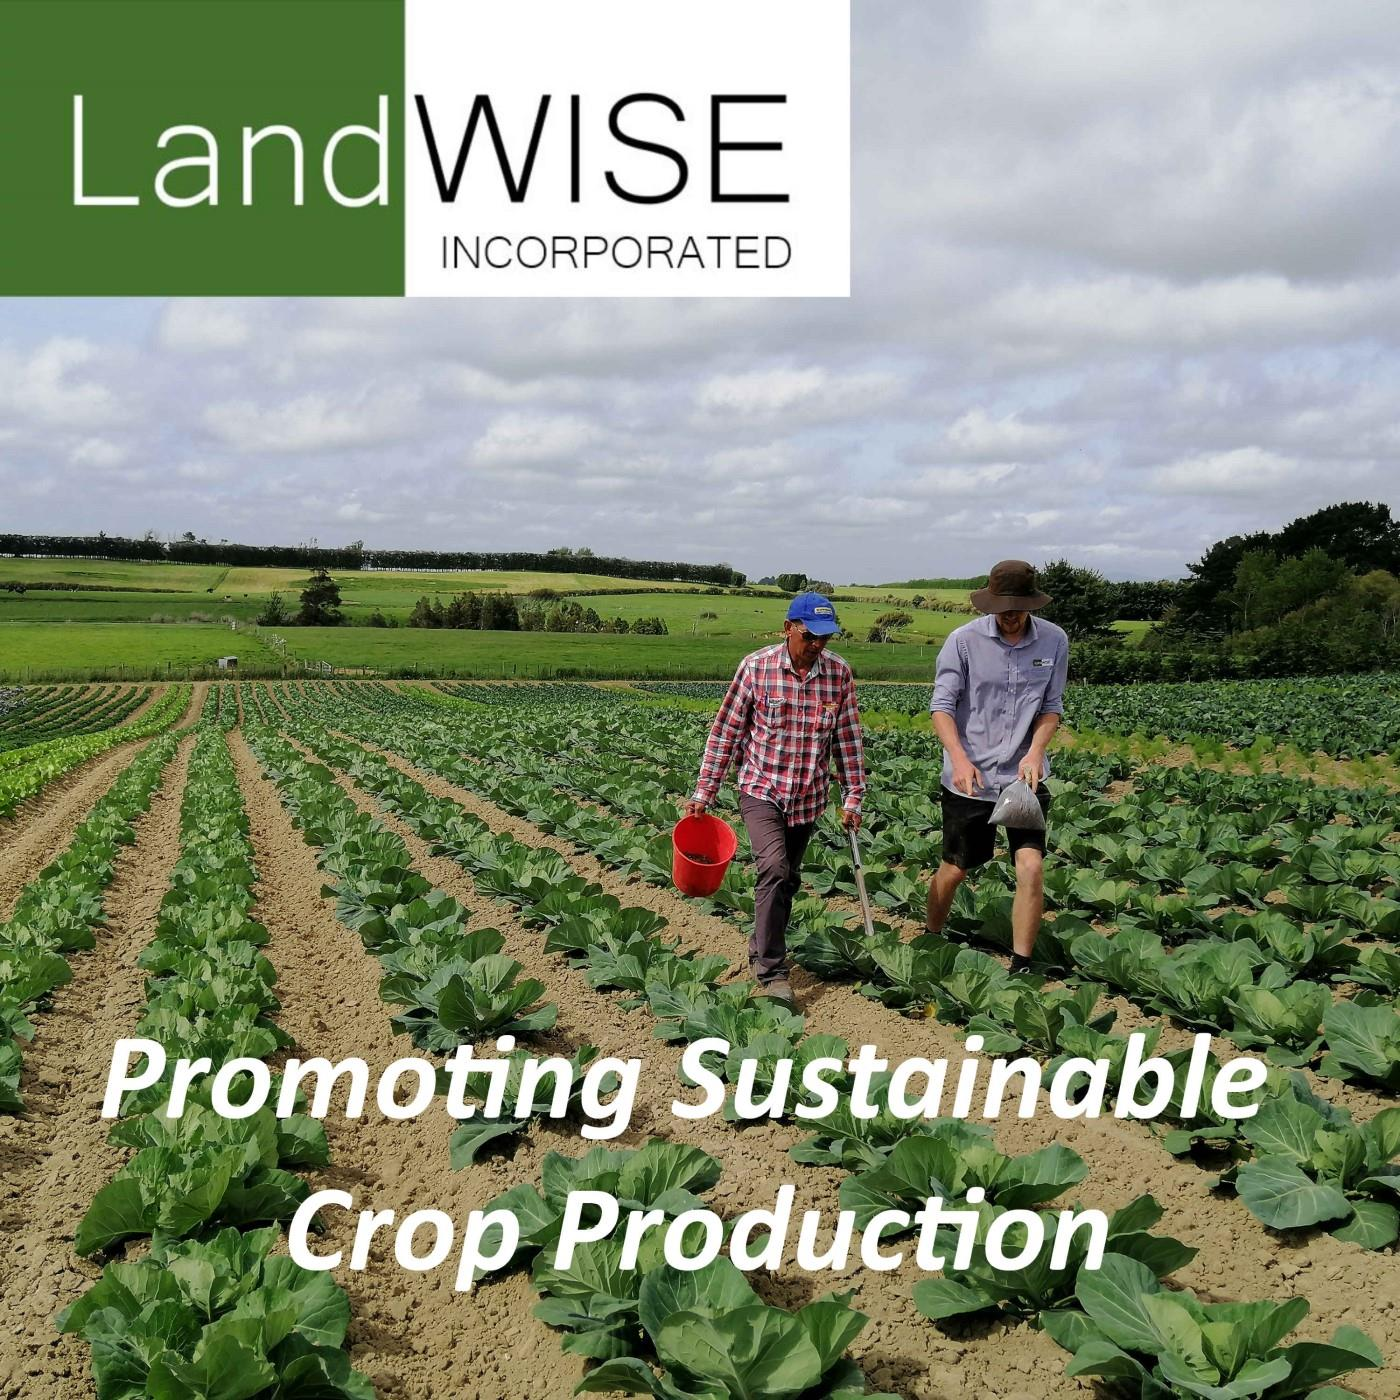 LandWISE: Promoting Sustainable Crop Production